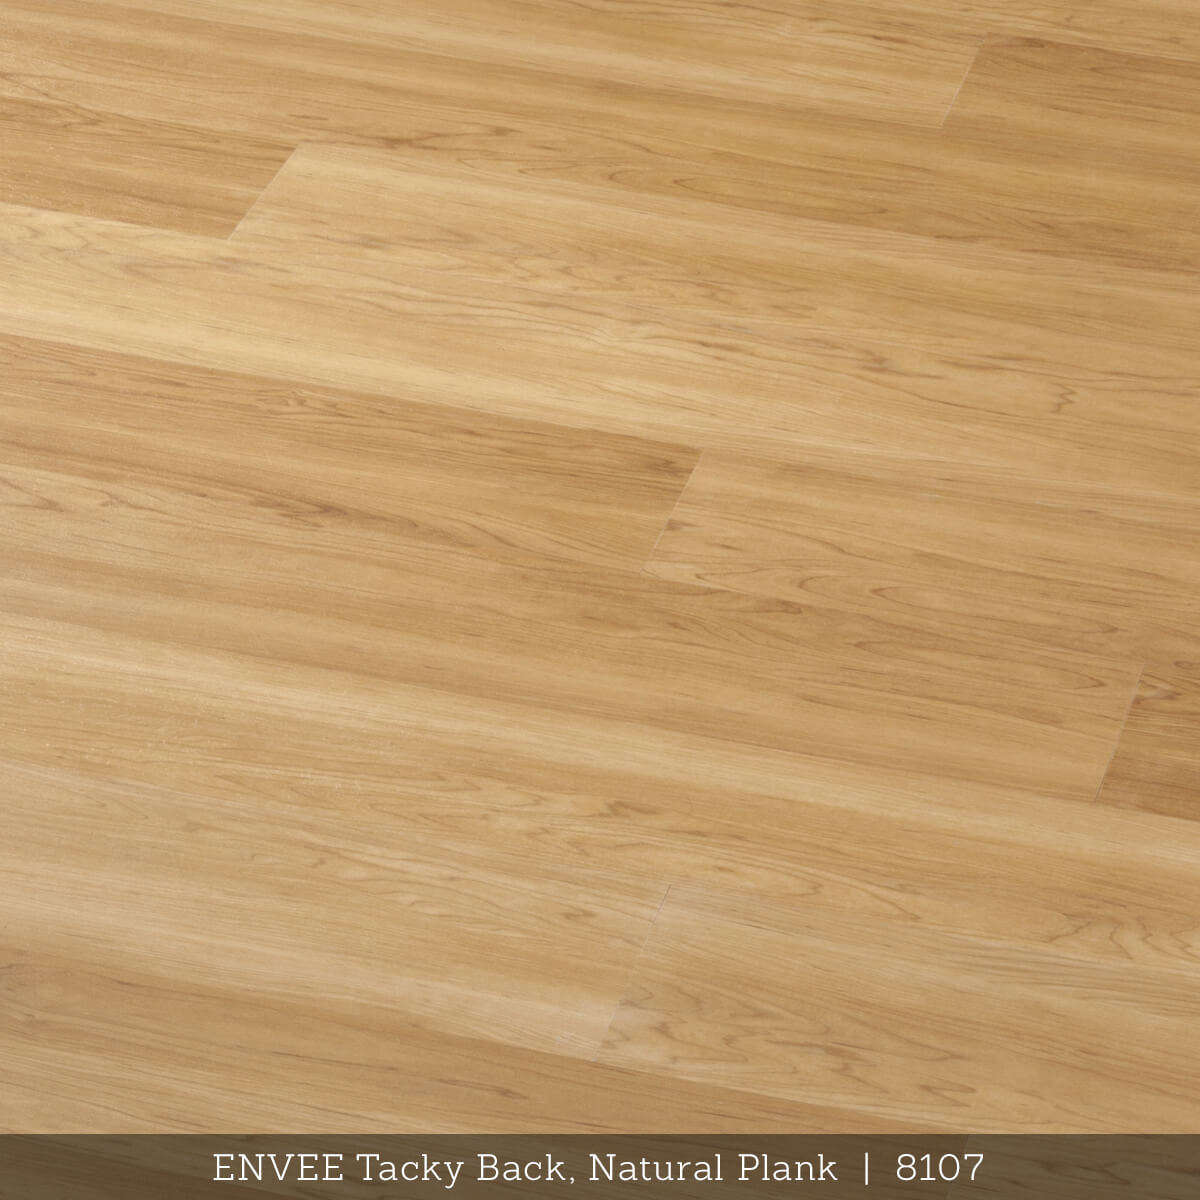 Envee Tacky Back, Natural Plank